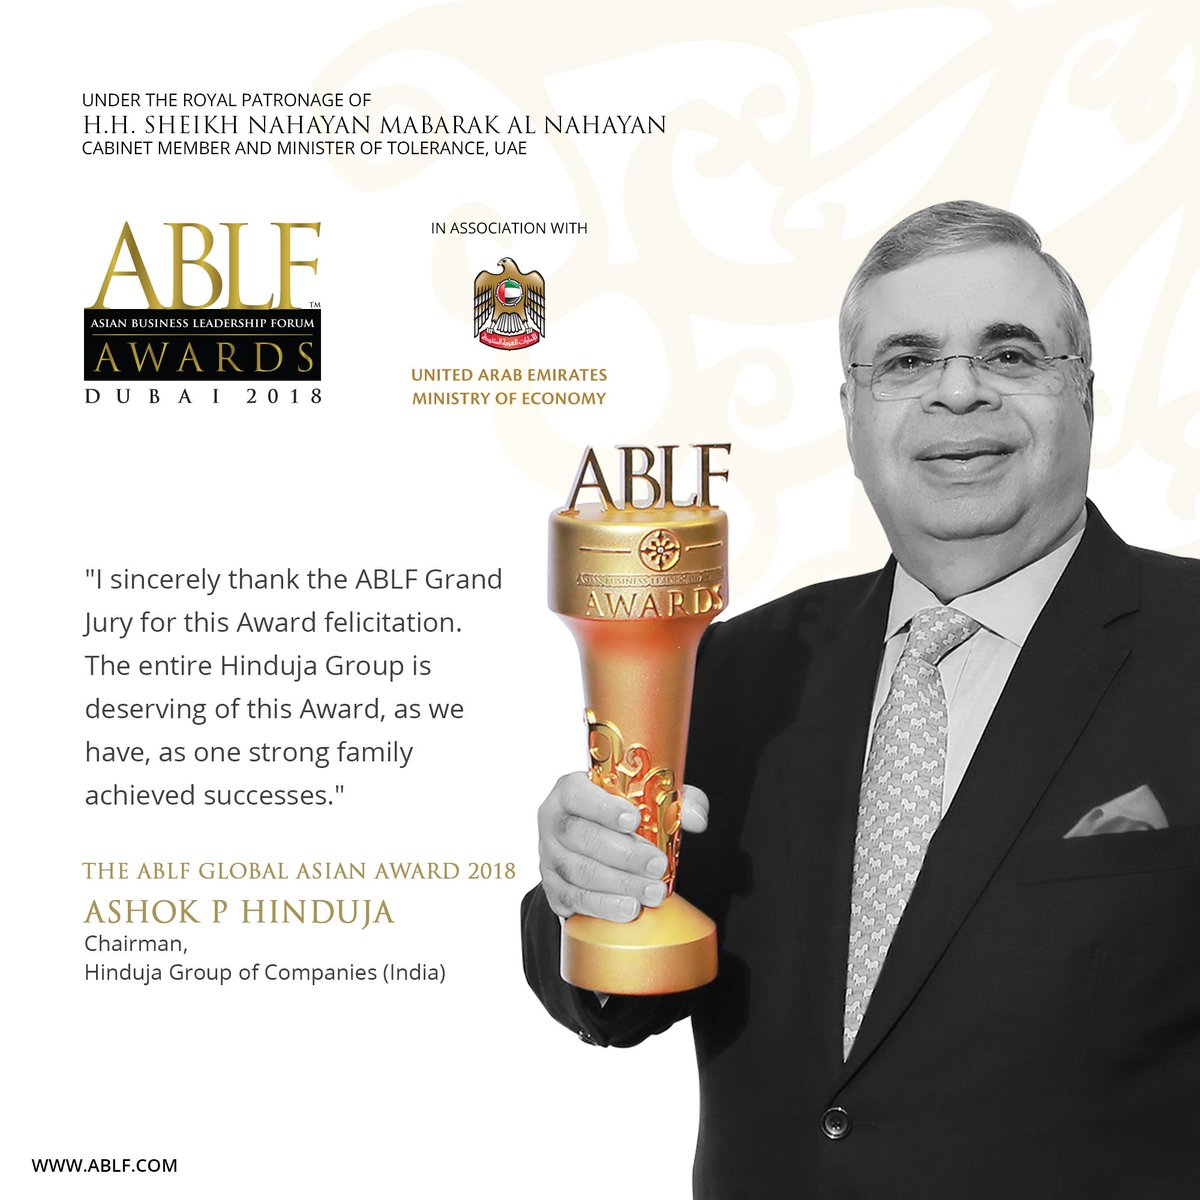 ABLF on Twitter: